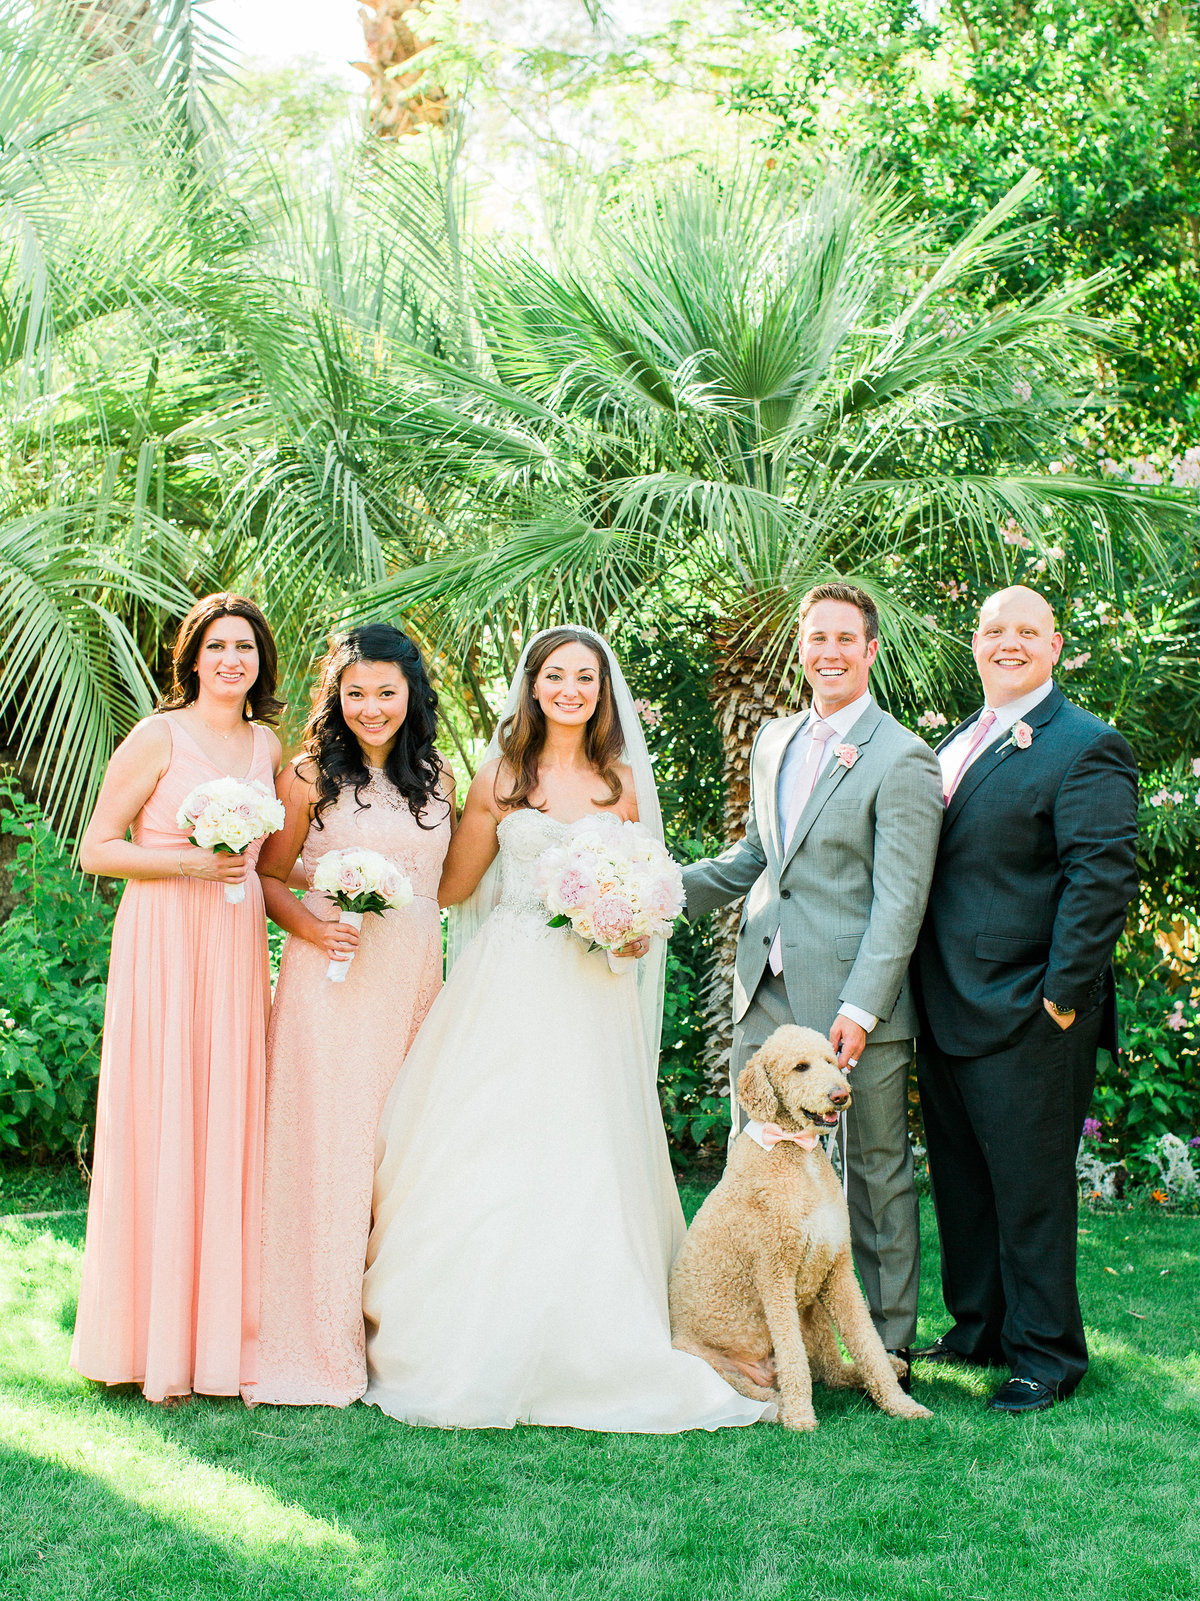 Imoni-Events-Elyse-Hall-Royal-Palms-139-5477